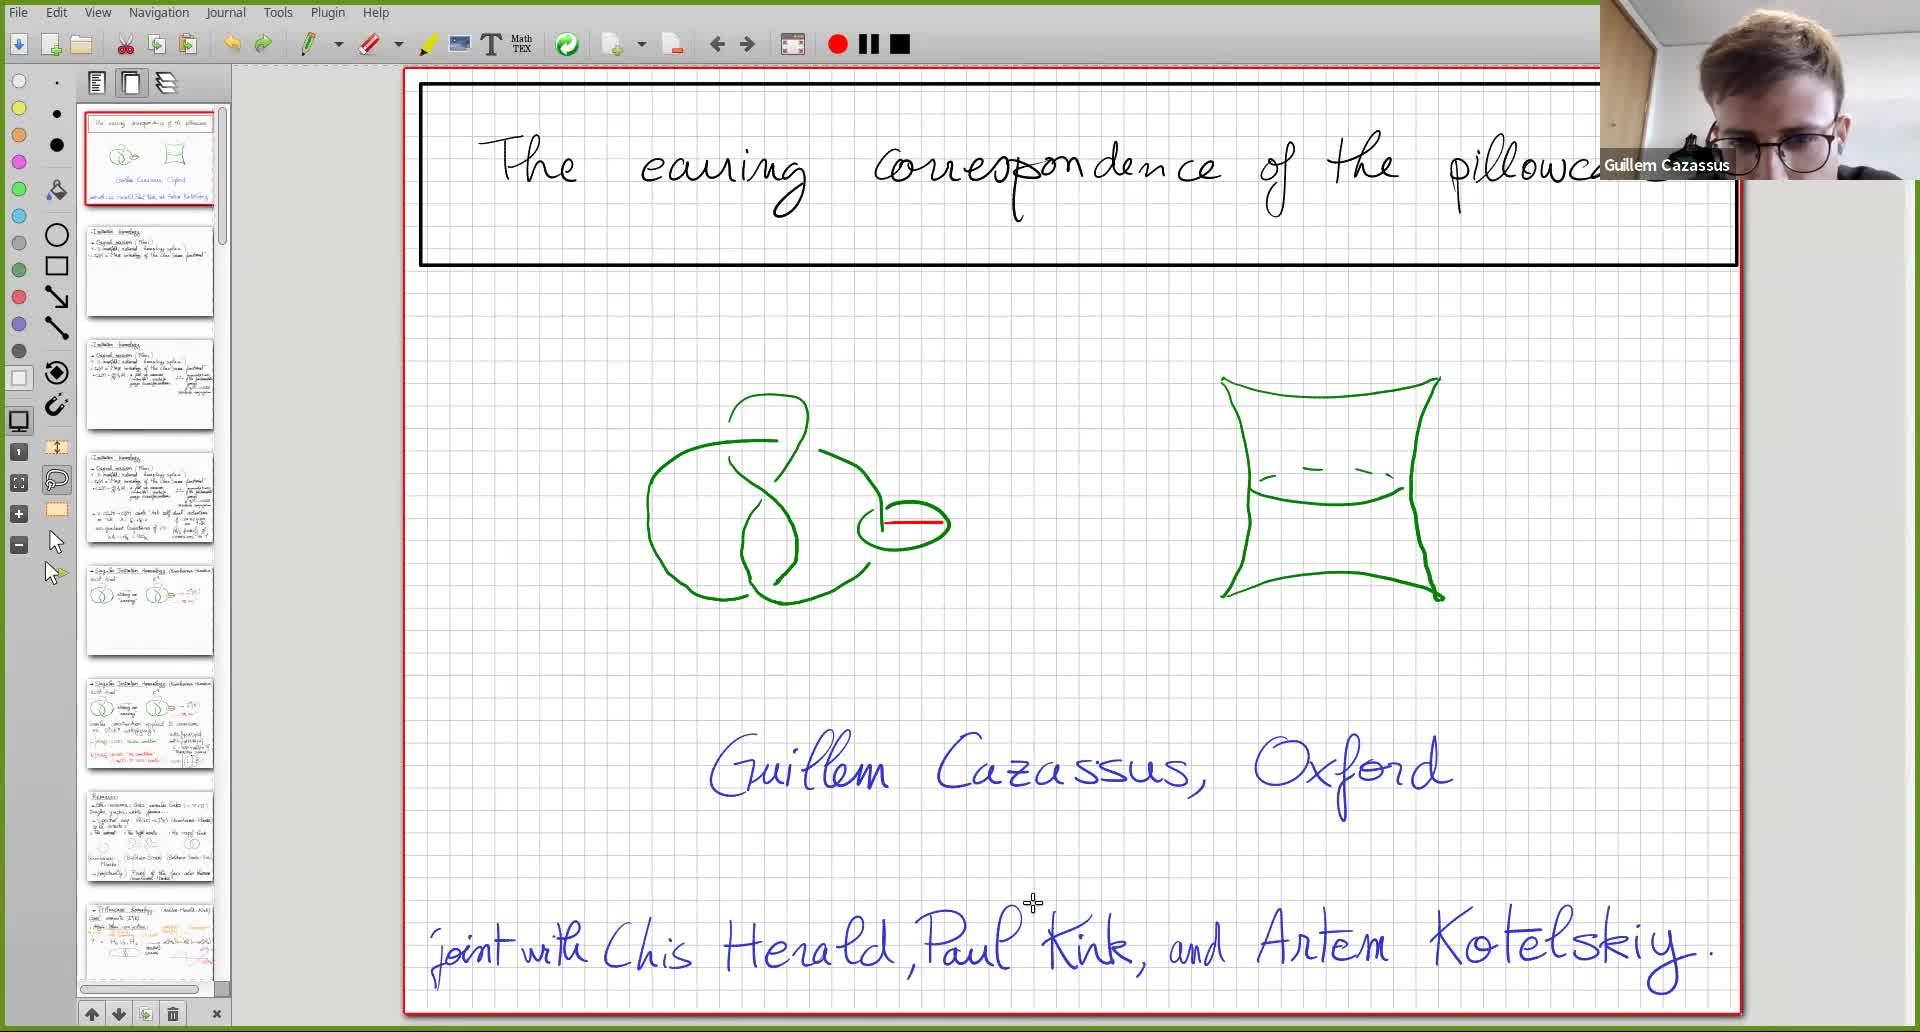 Guillem Cazassus: The earring correspondence of the pillowcase